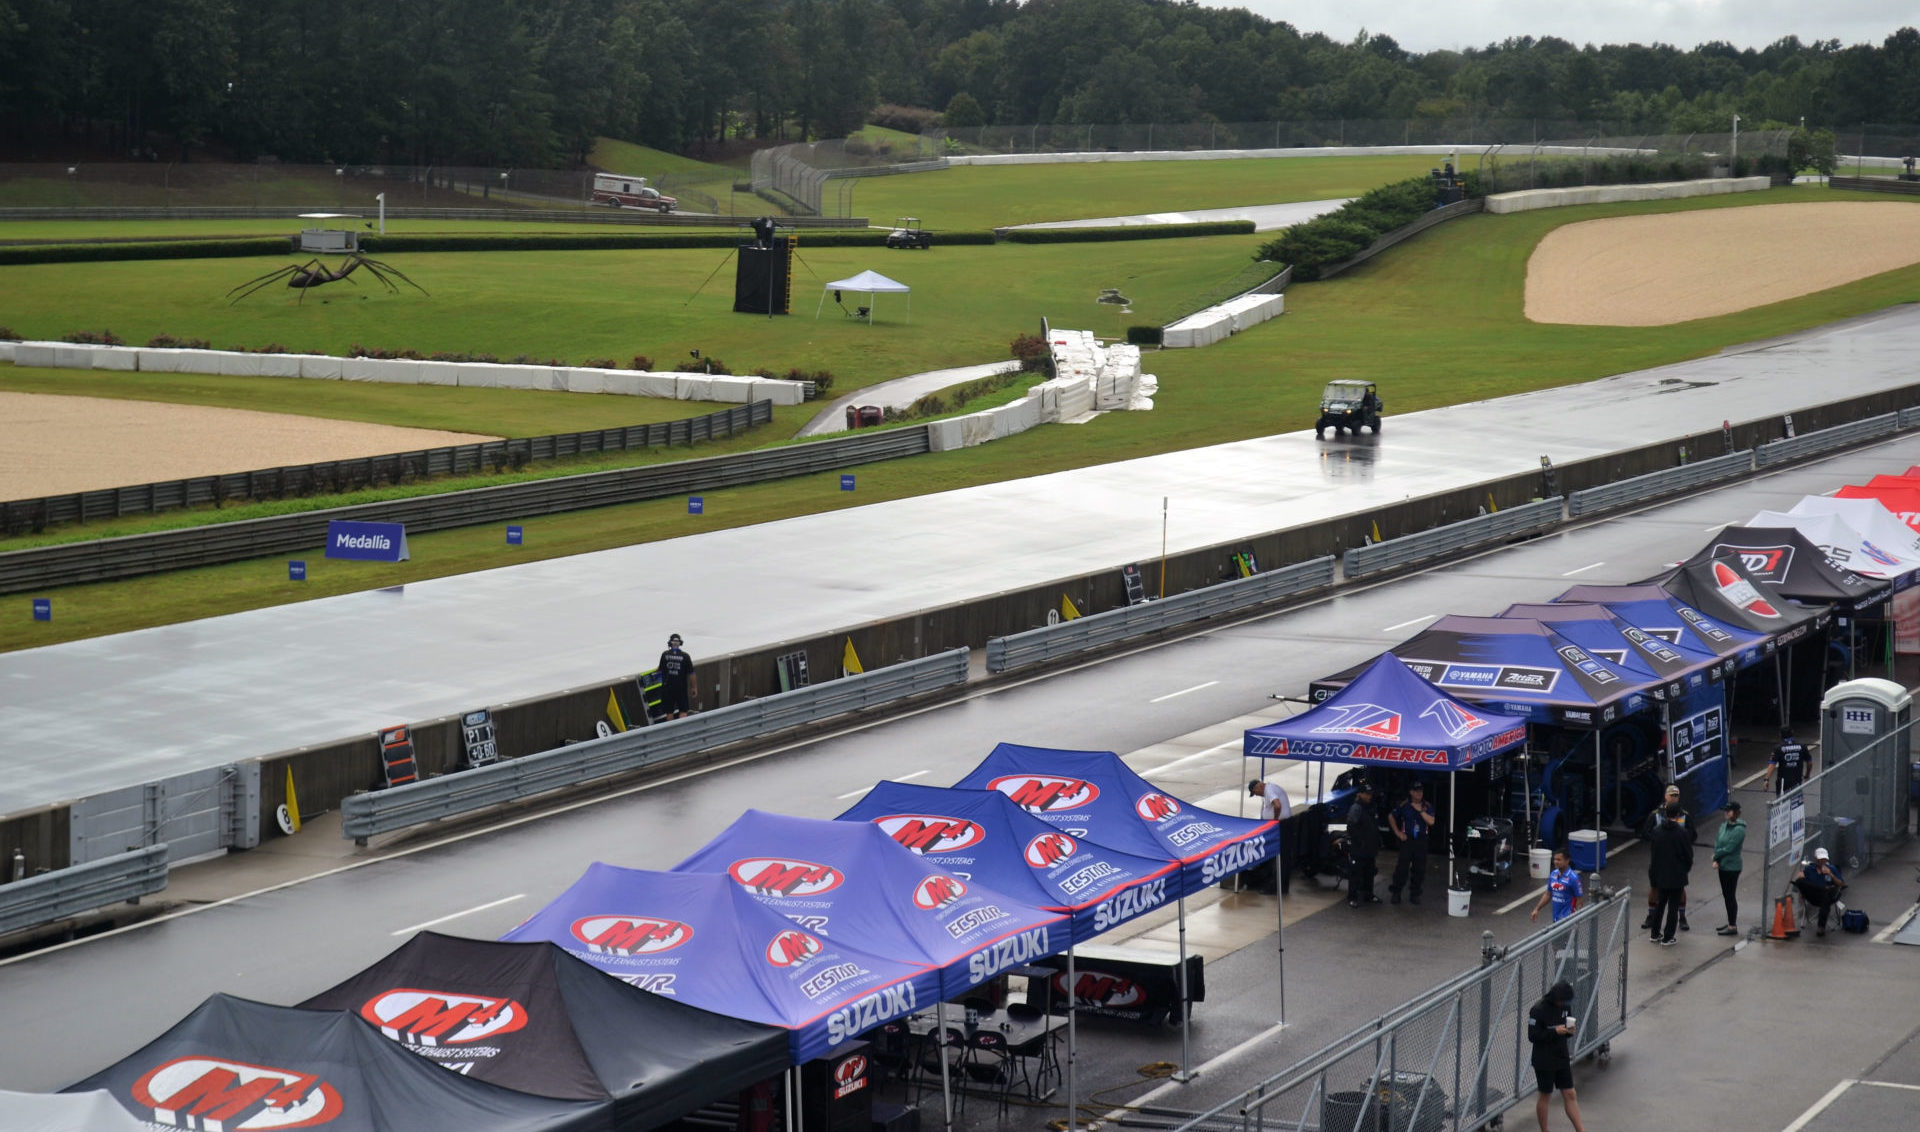 Barber Motorsports Park, as seen at 11:20 a.m. local time on Saturday. Photo by David Swarts.